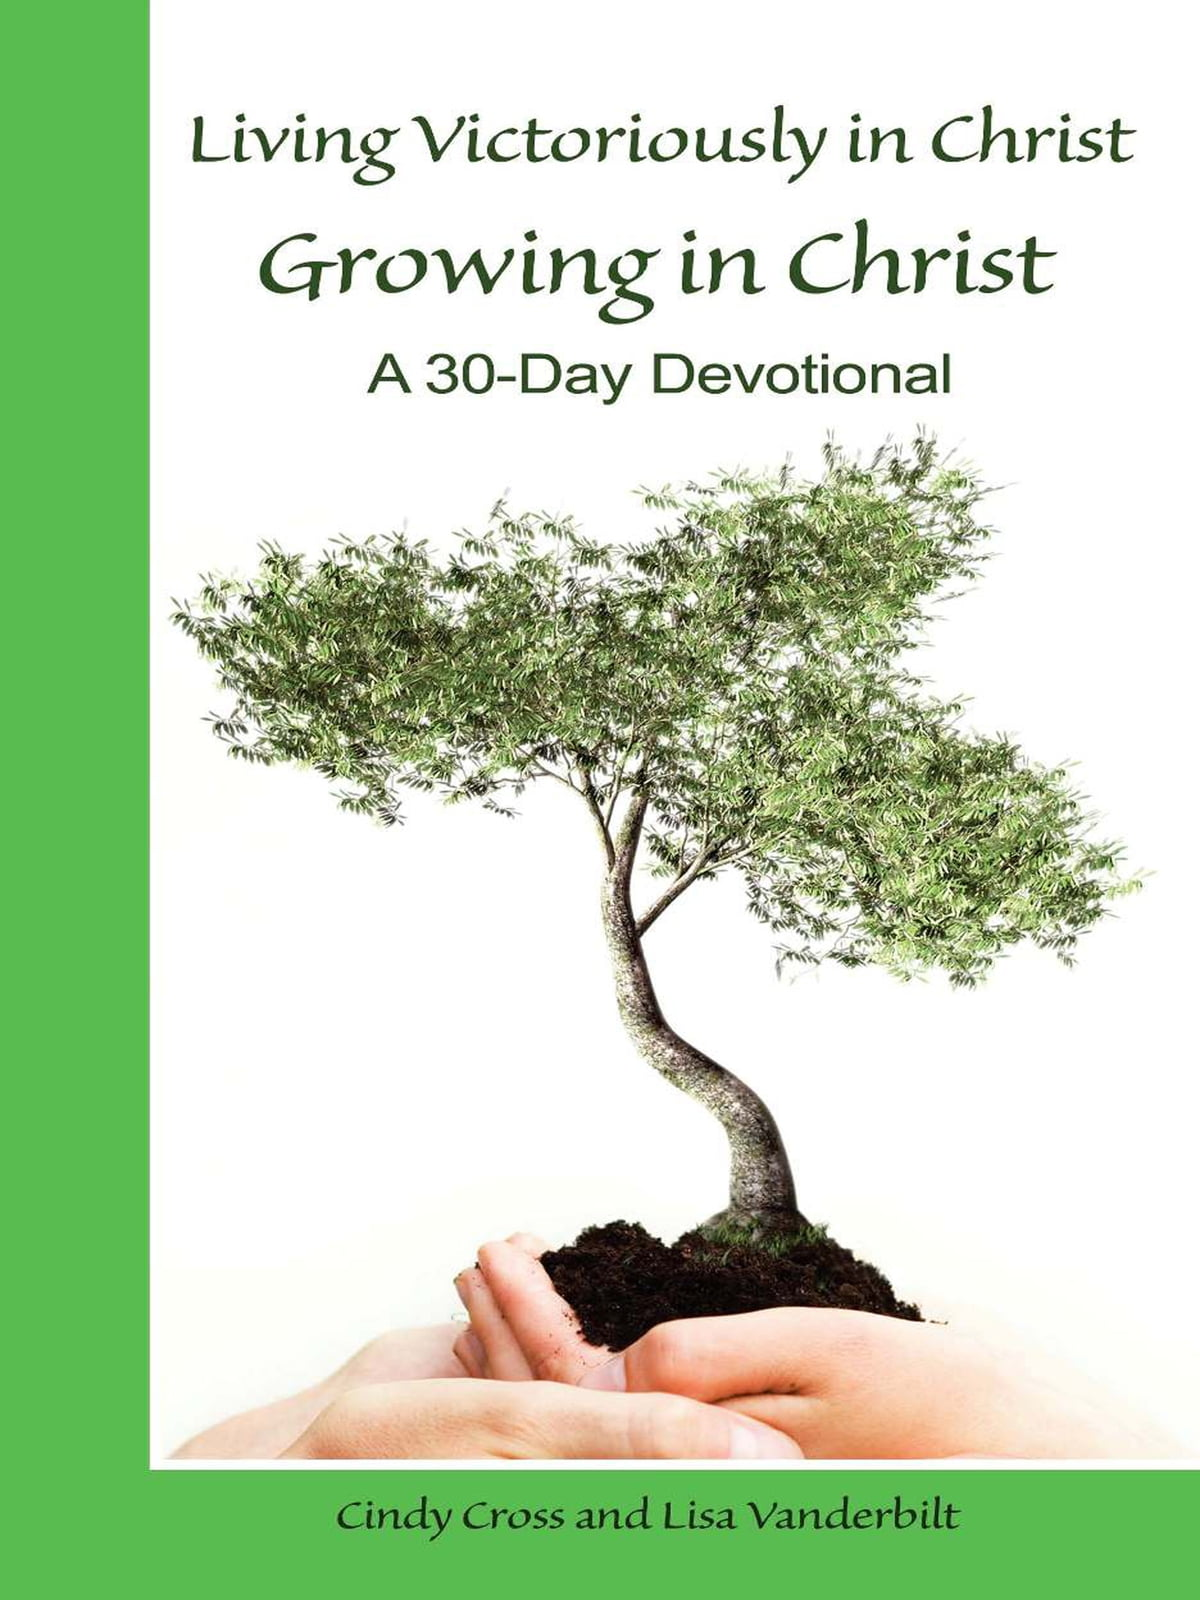 living victoriously in christ growing in christ ebook by cindy cross